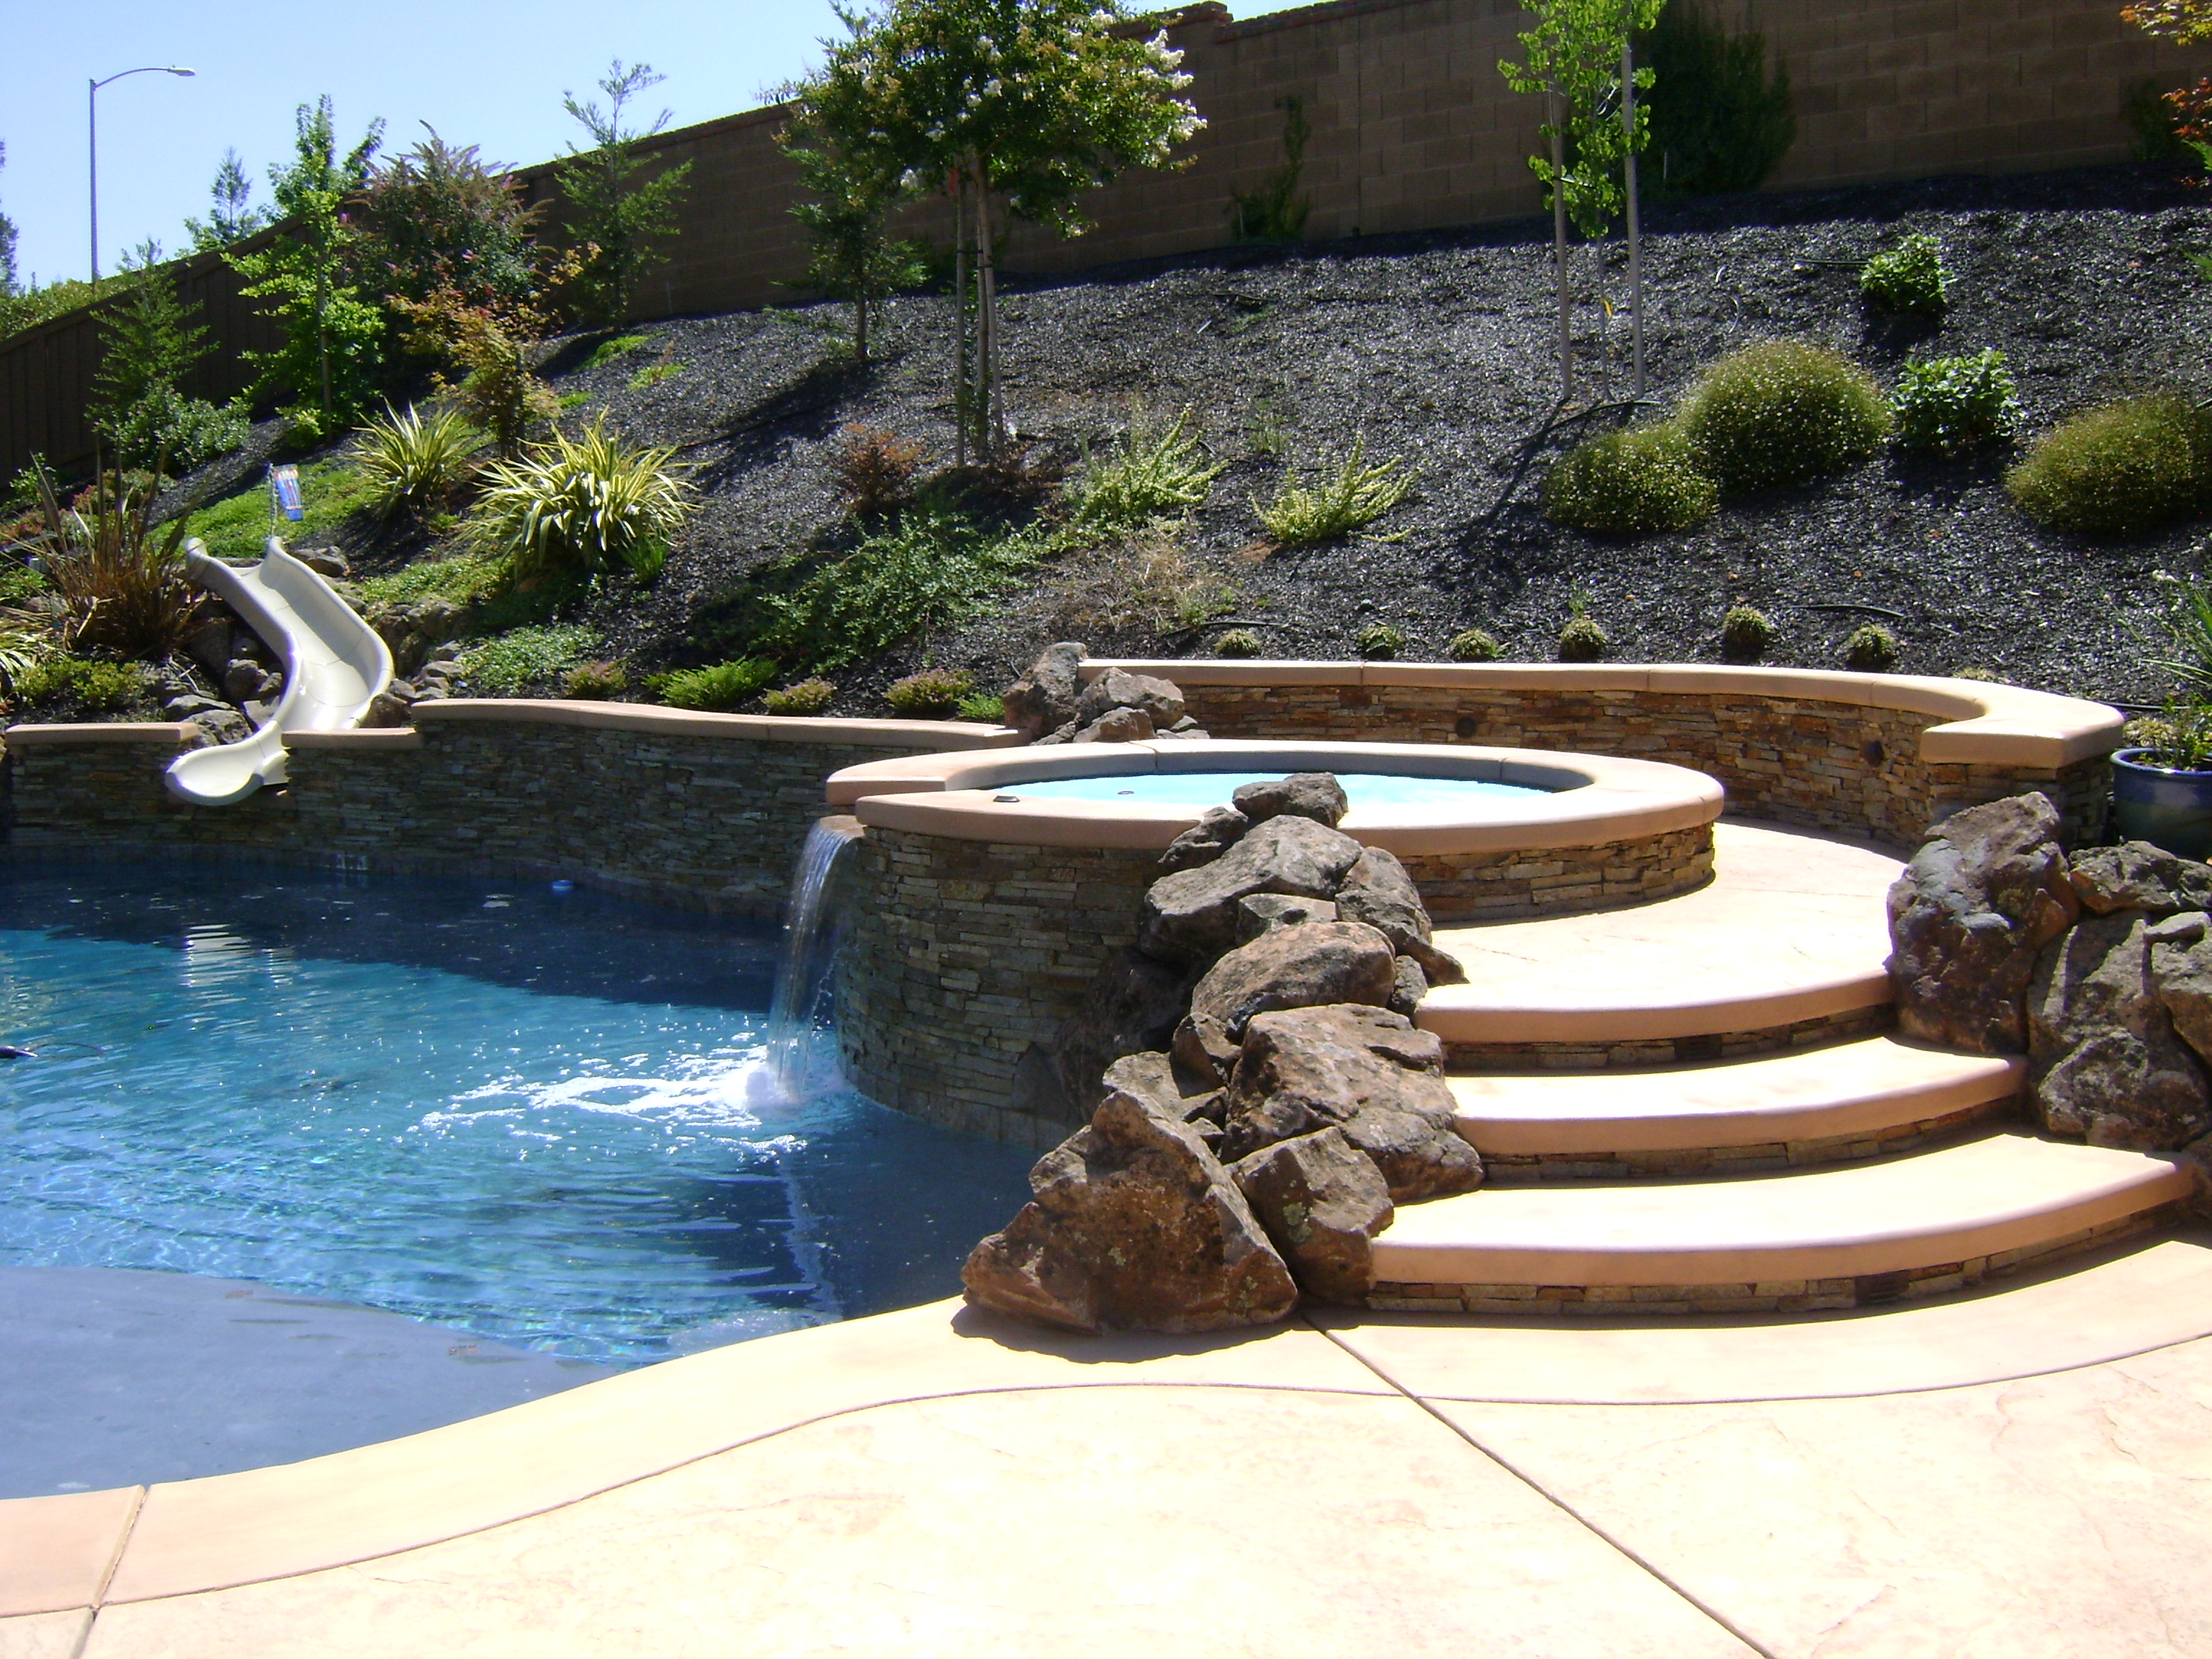 Pool Landscape Design | Pool Design & Pool Ideas